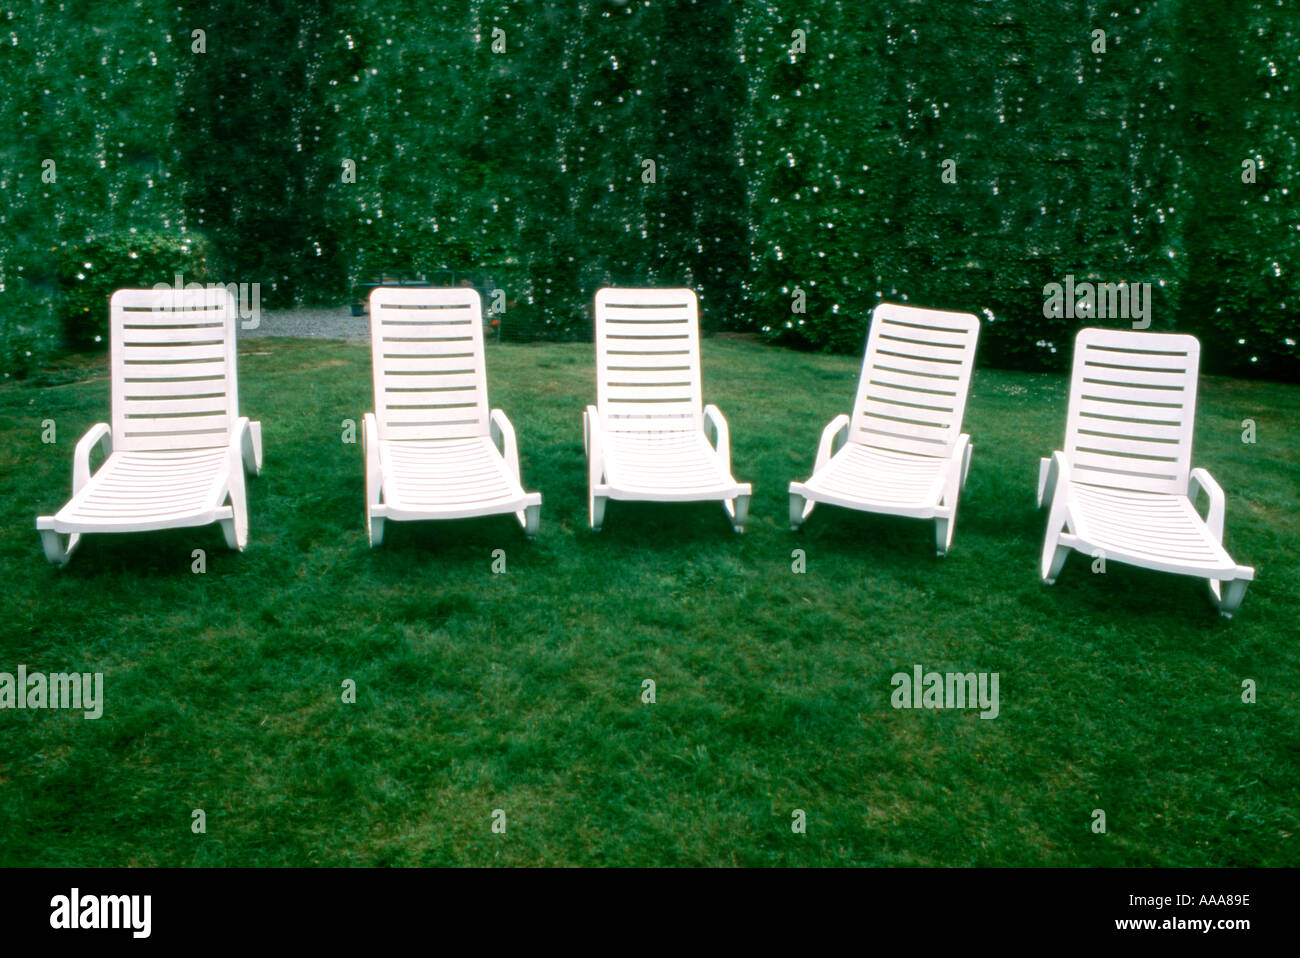 Chaise Lounge Lawn Chairs On Green Grass In Park